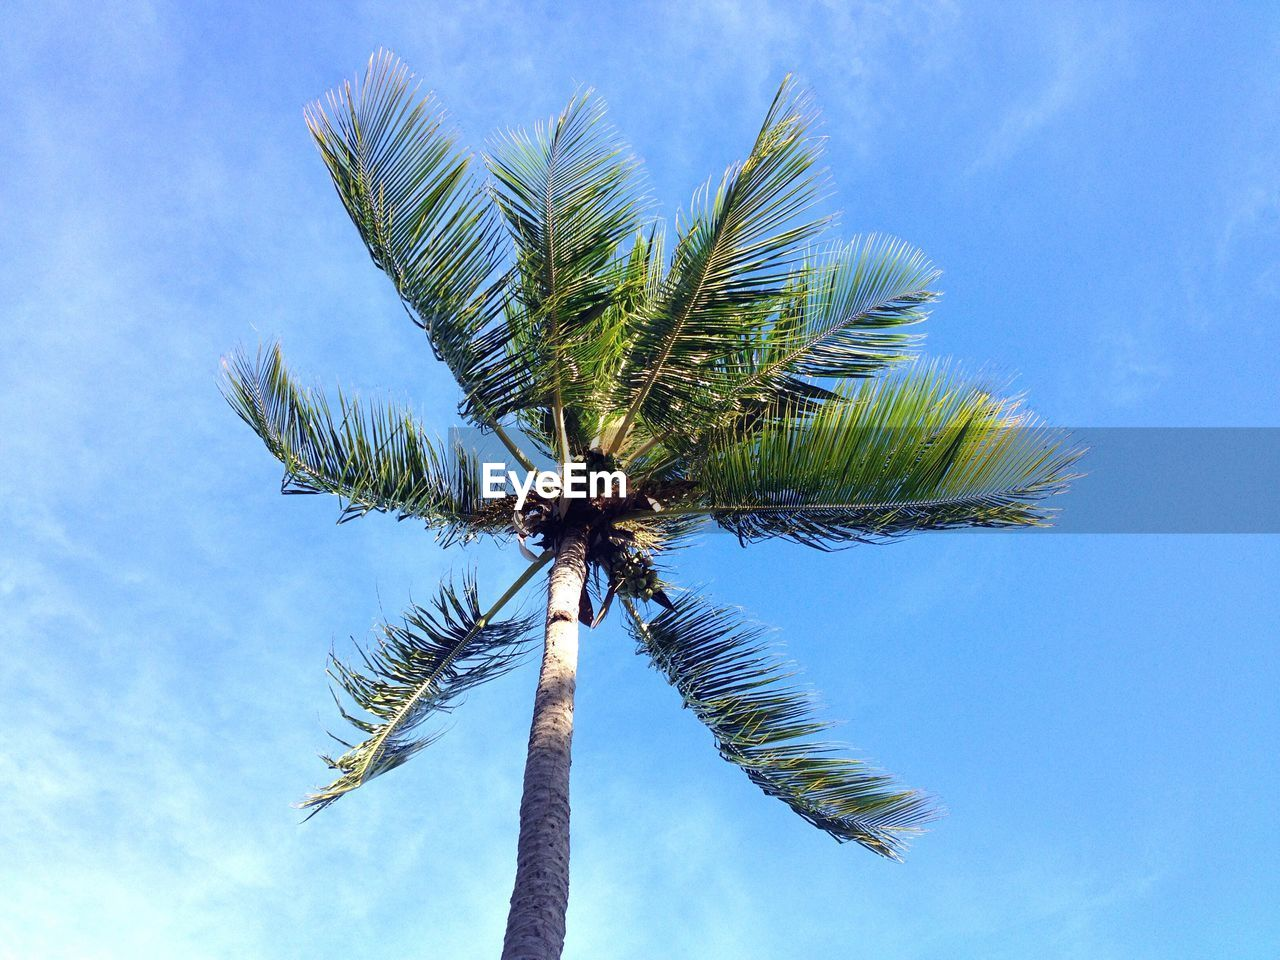 palm tree, tree, low angle view, sky, blue, day, outdoors, no people, palm frond, nature, tree trunk, growth, beauty in nature